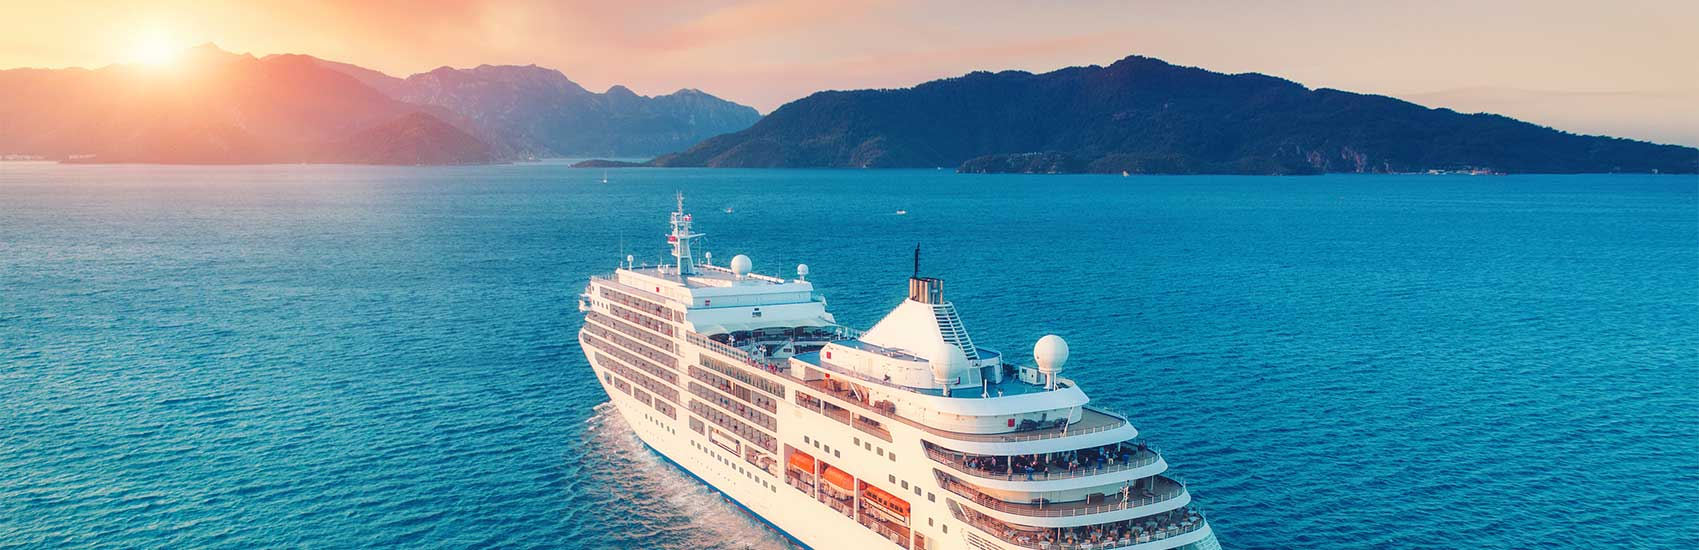 Virtuoso Exclusive Cruise Benefits